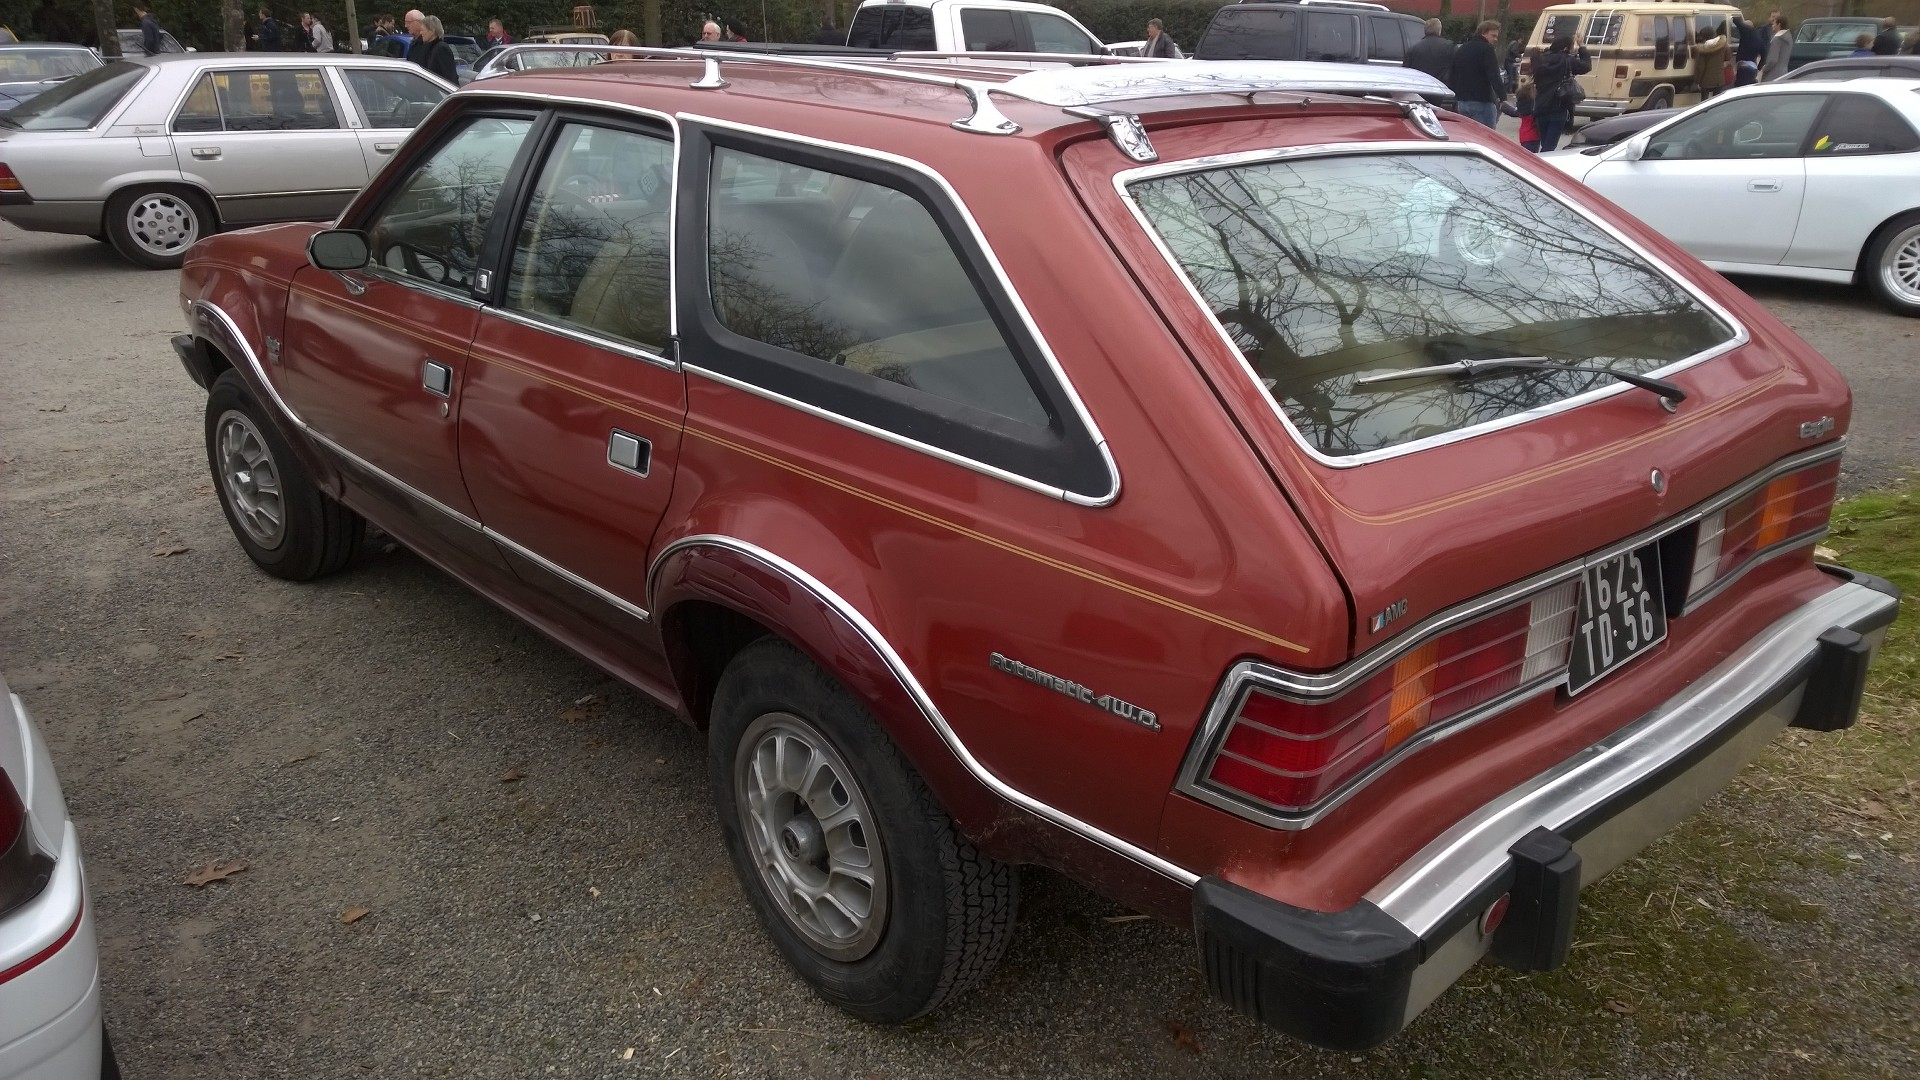 DM - photo - AMC Eagle 4WD - arriere / rear - Ouest Motors Festival 2015 Lorient